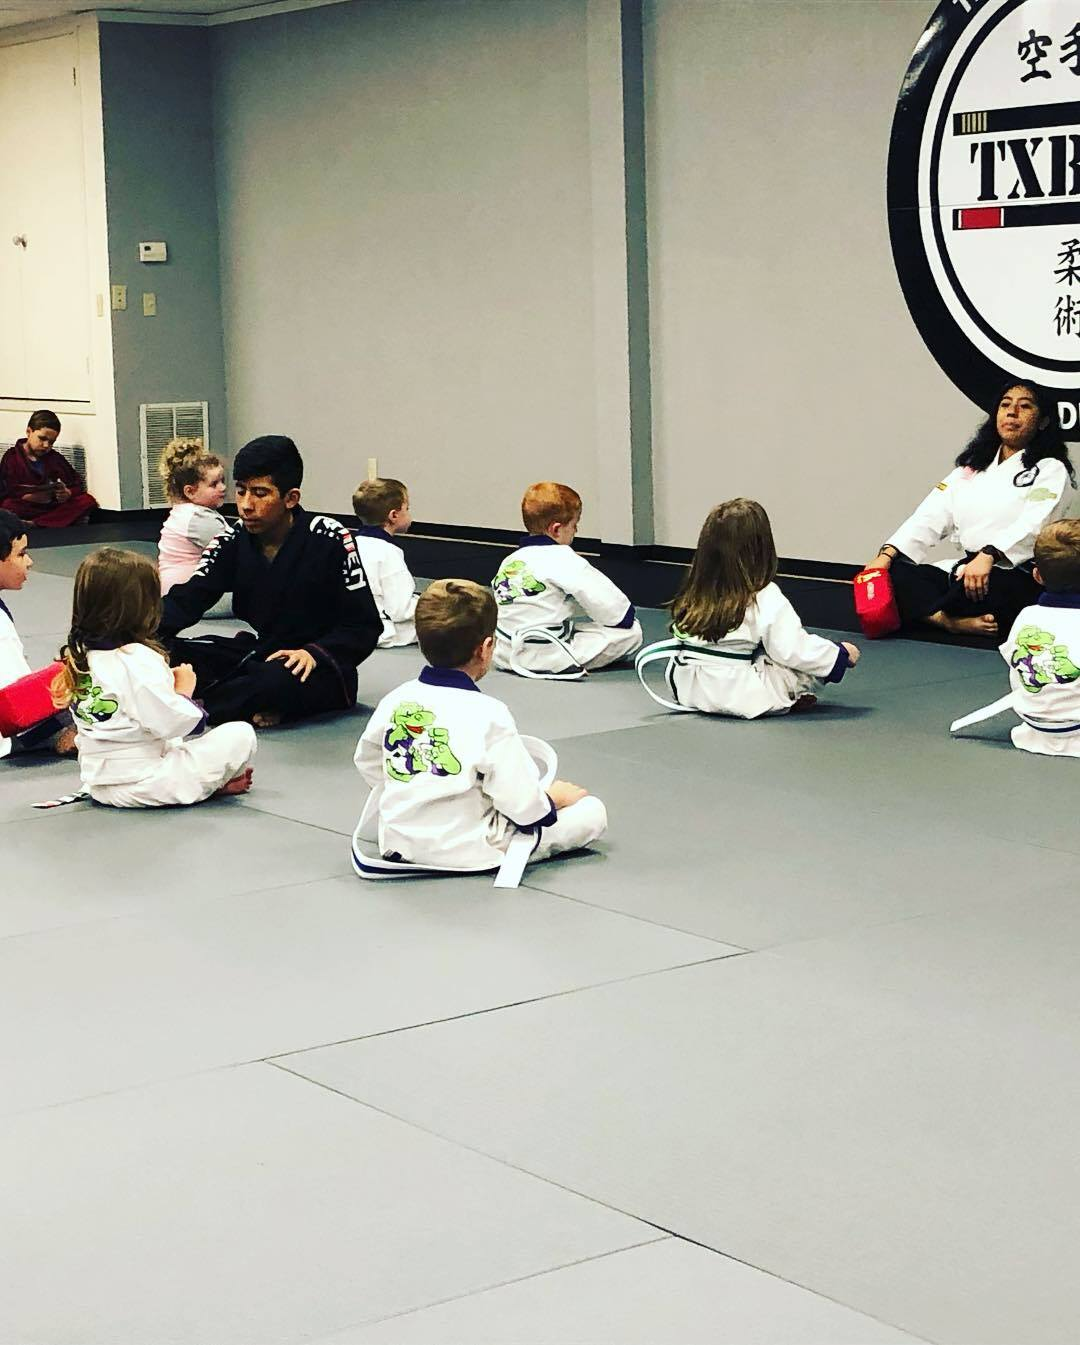 Kids Learning Focus and Self Discipline!